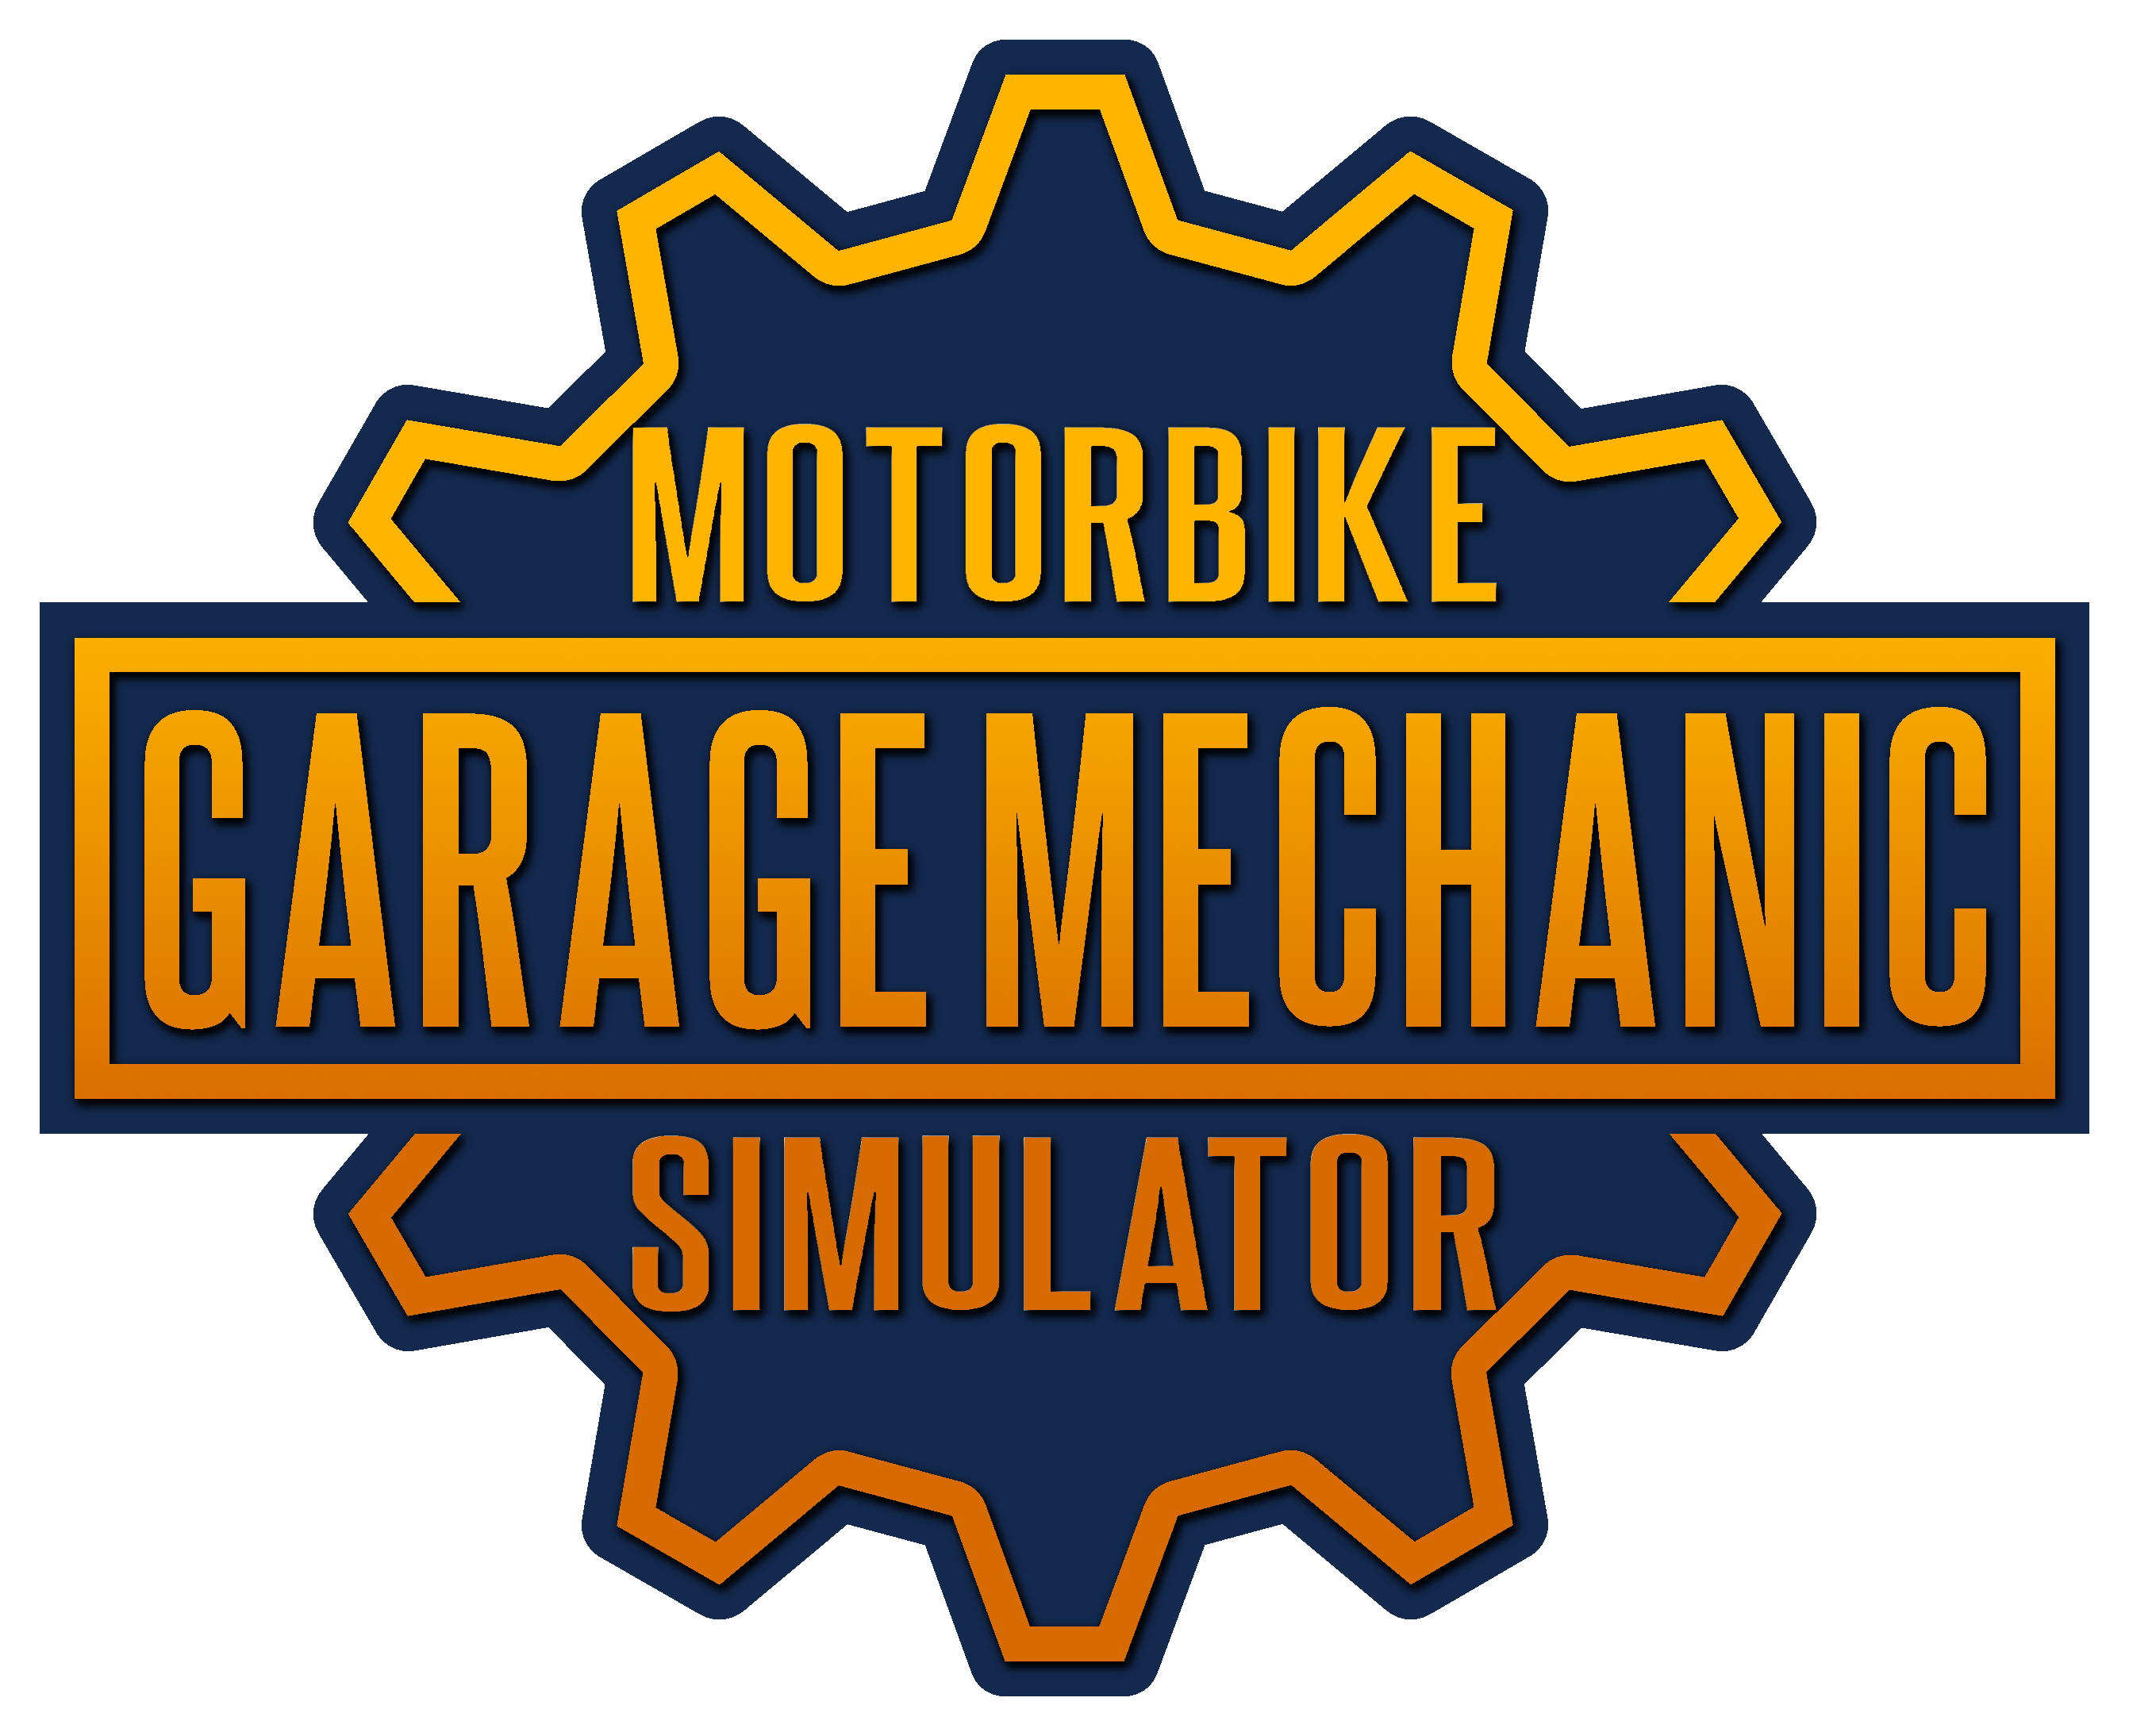 Wanted transparent mechanic. Motorbike garage simulator you